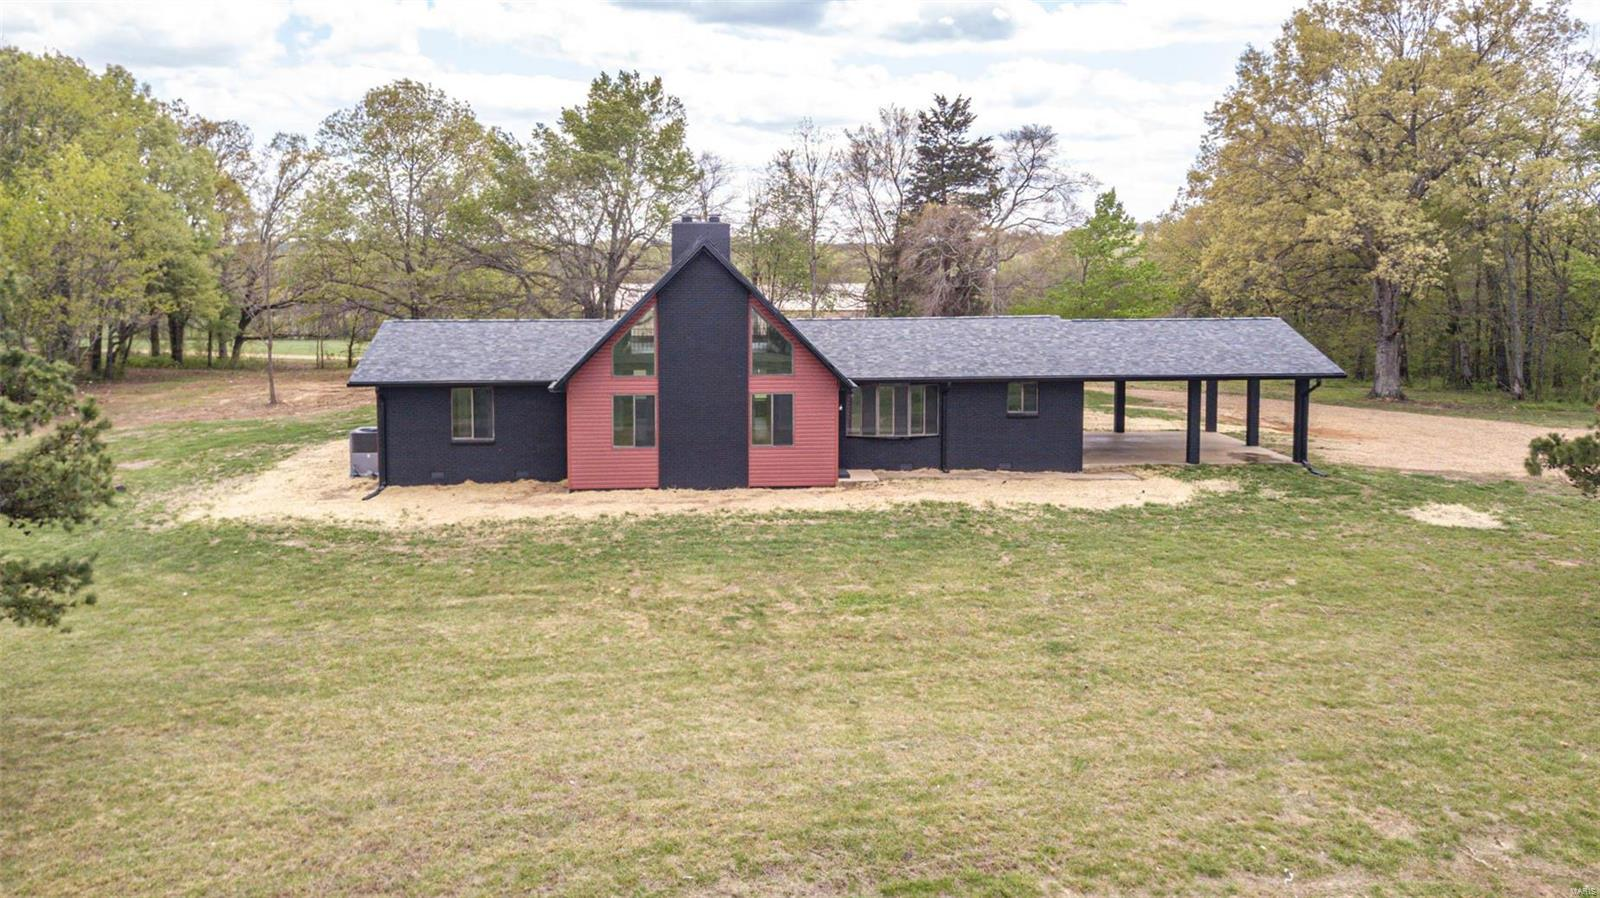 989 Ripley A-6 Property Photo - Doniphan, MO real estate listing